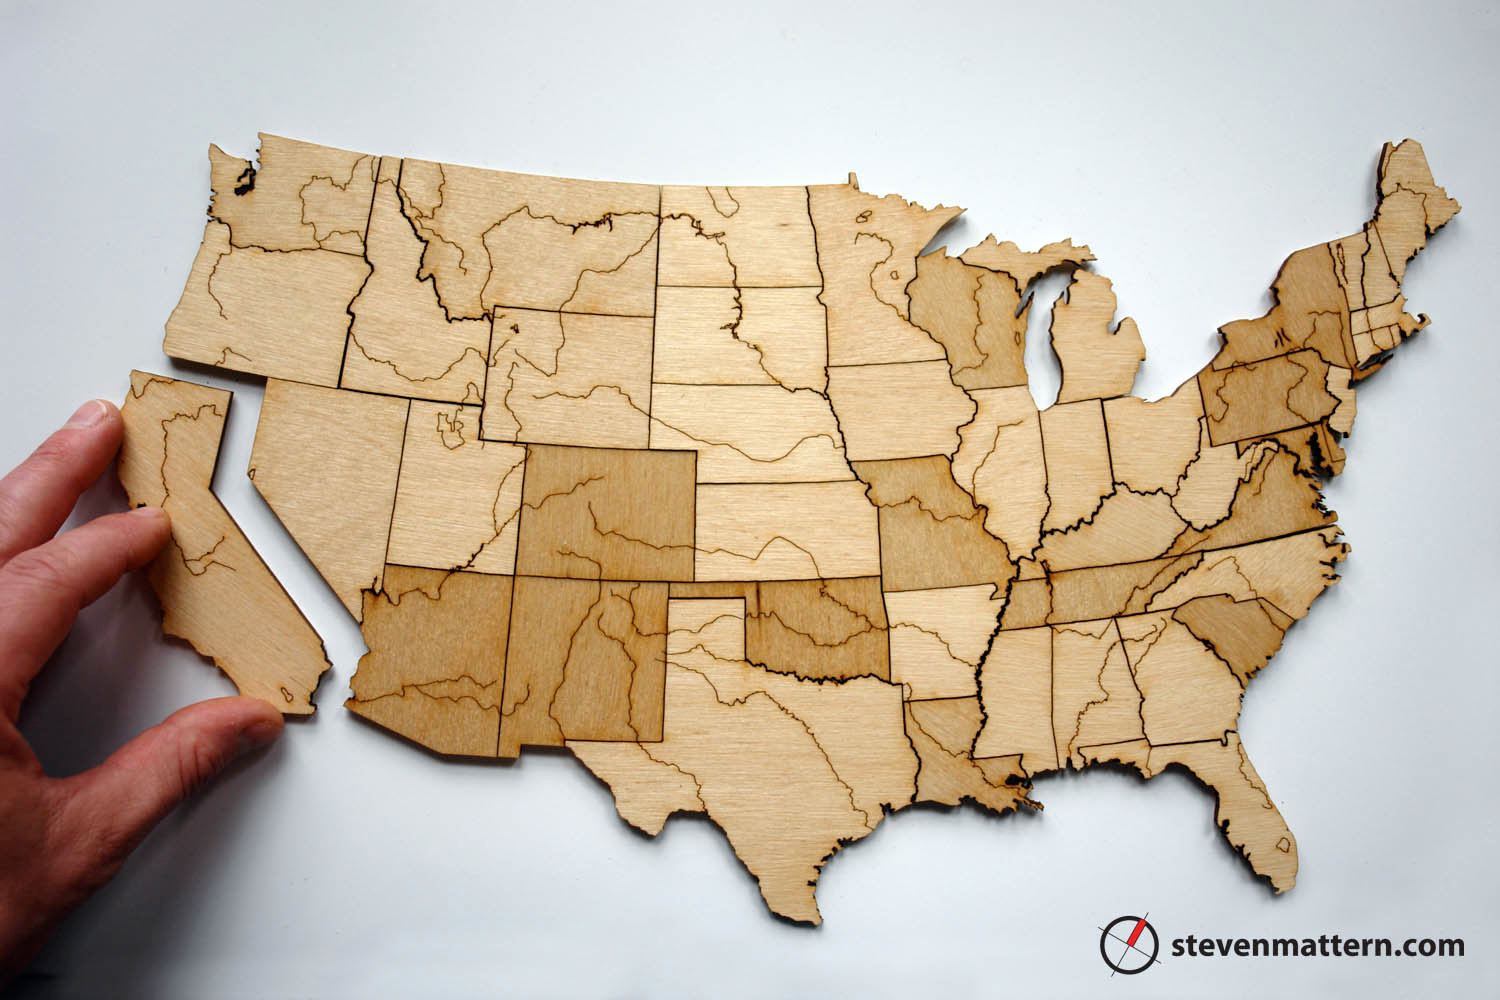 United States Map Magnets.15 Cool Fridge Magnets And Unusual Fridge Magnet Designs Part 5